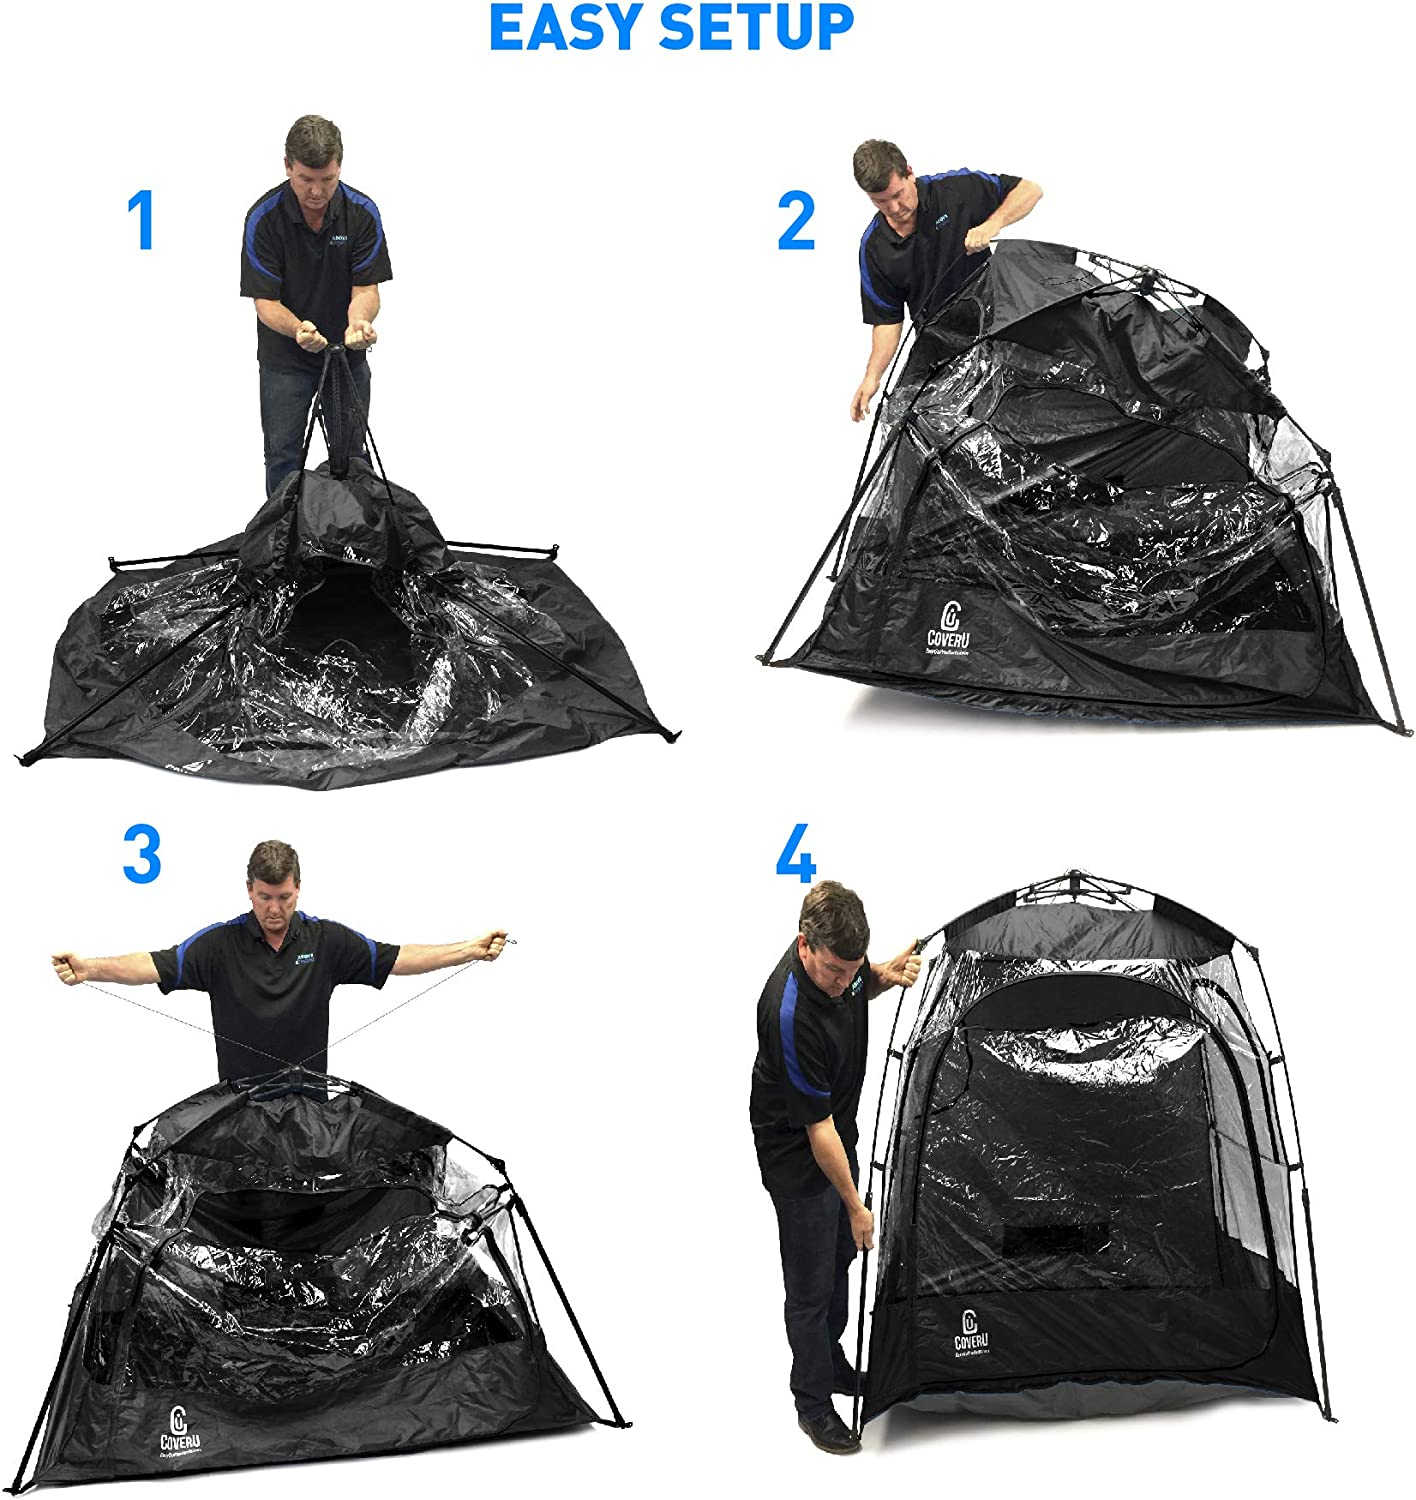 CoverU Sport Tent Pod Instant Pop Up Tent Great For Soccer, Football, Baseball and Softball etc. Large Size Patented